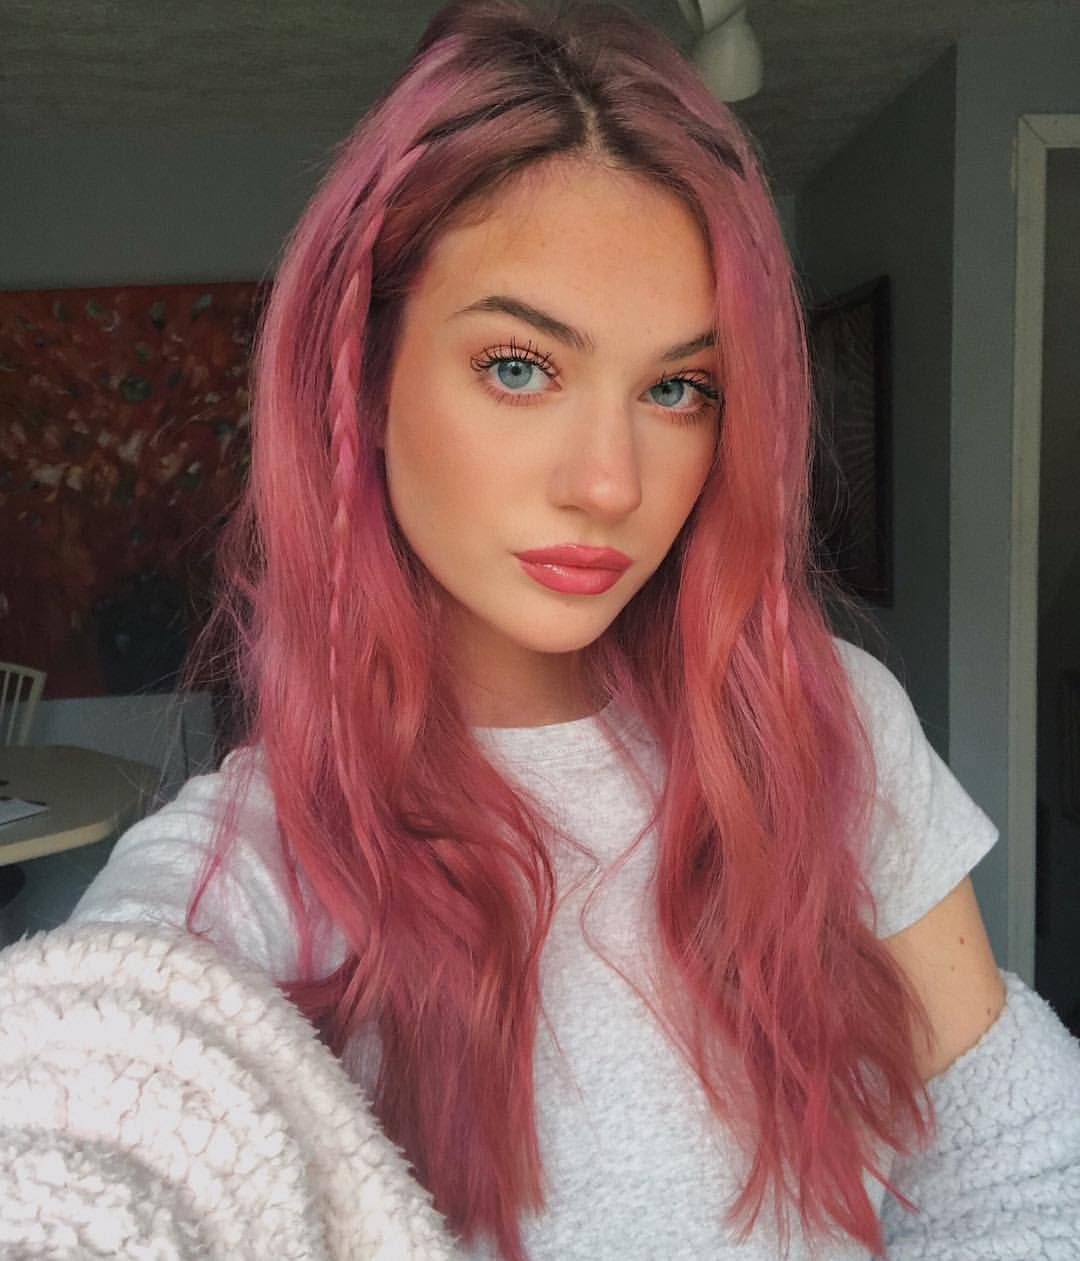 Most Up To Date No Cost Dyed Hair Ideas Suggestions Are Your Plant S Roots Pr Cost Dyed Hair Ideas Plan In 2020 Hair Color Pink Rose Pink Hair Hair Inspo Color